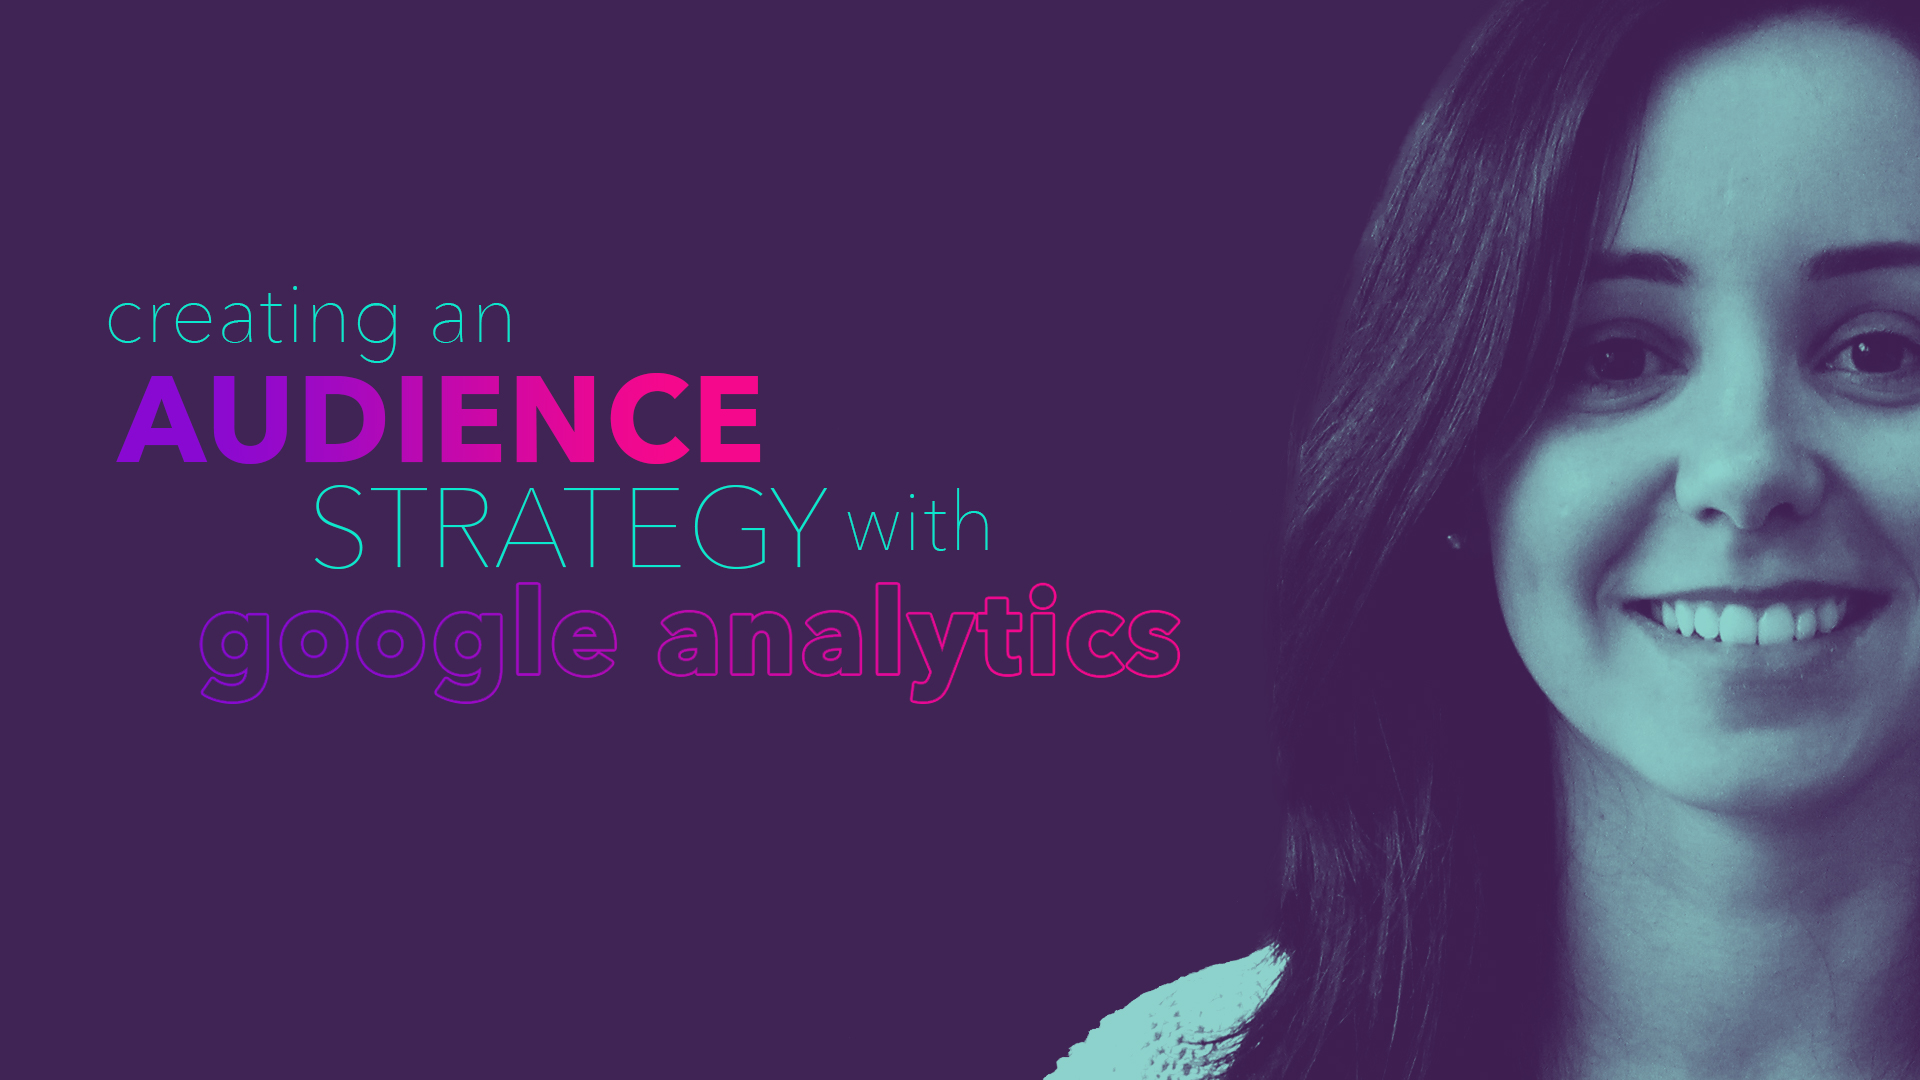 Wolfgang Essentials 2017 Video: Creating an Audience Strategy With Google Analytics